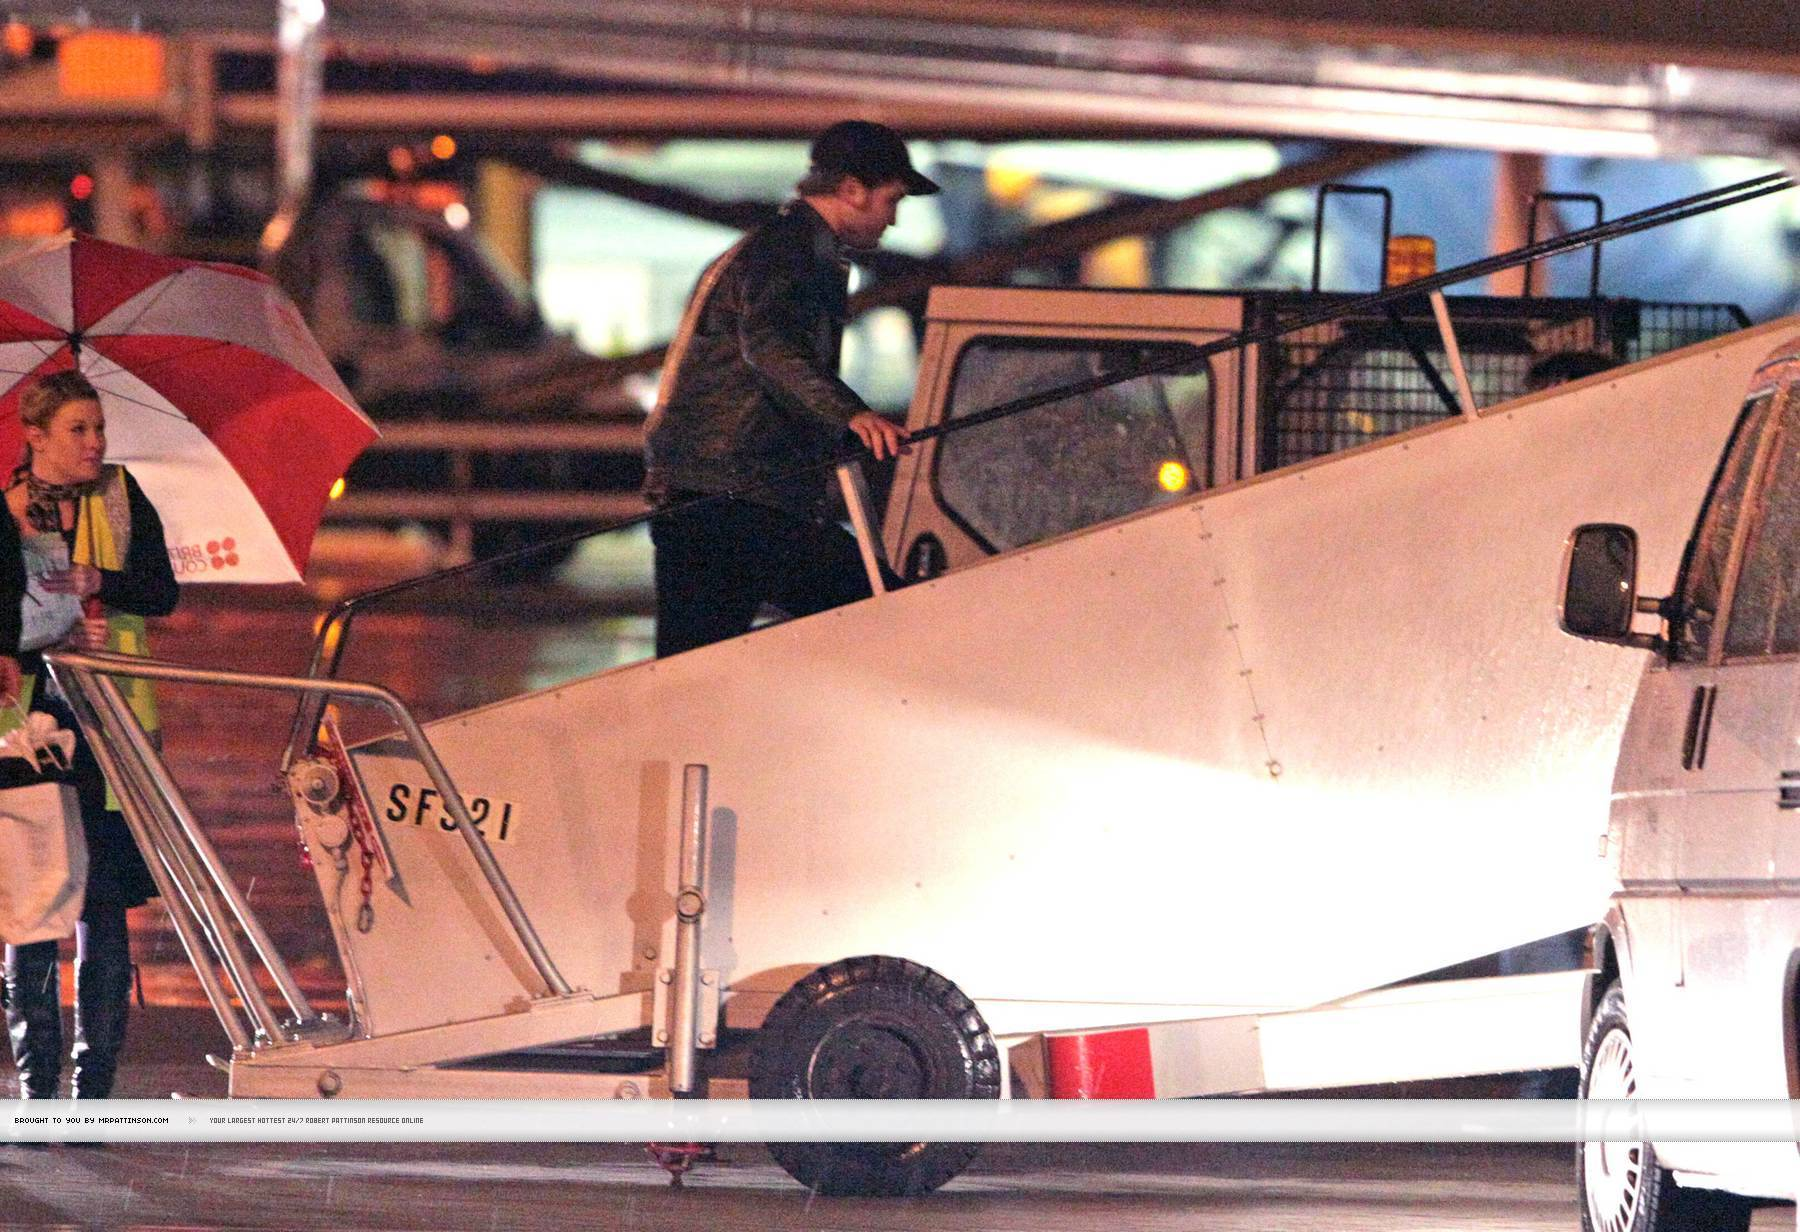 Rob, Kristen and Taylor leaving ロンドン last night